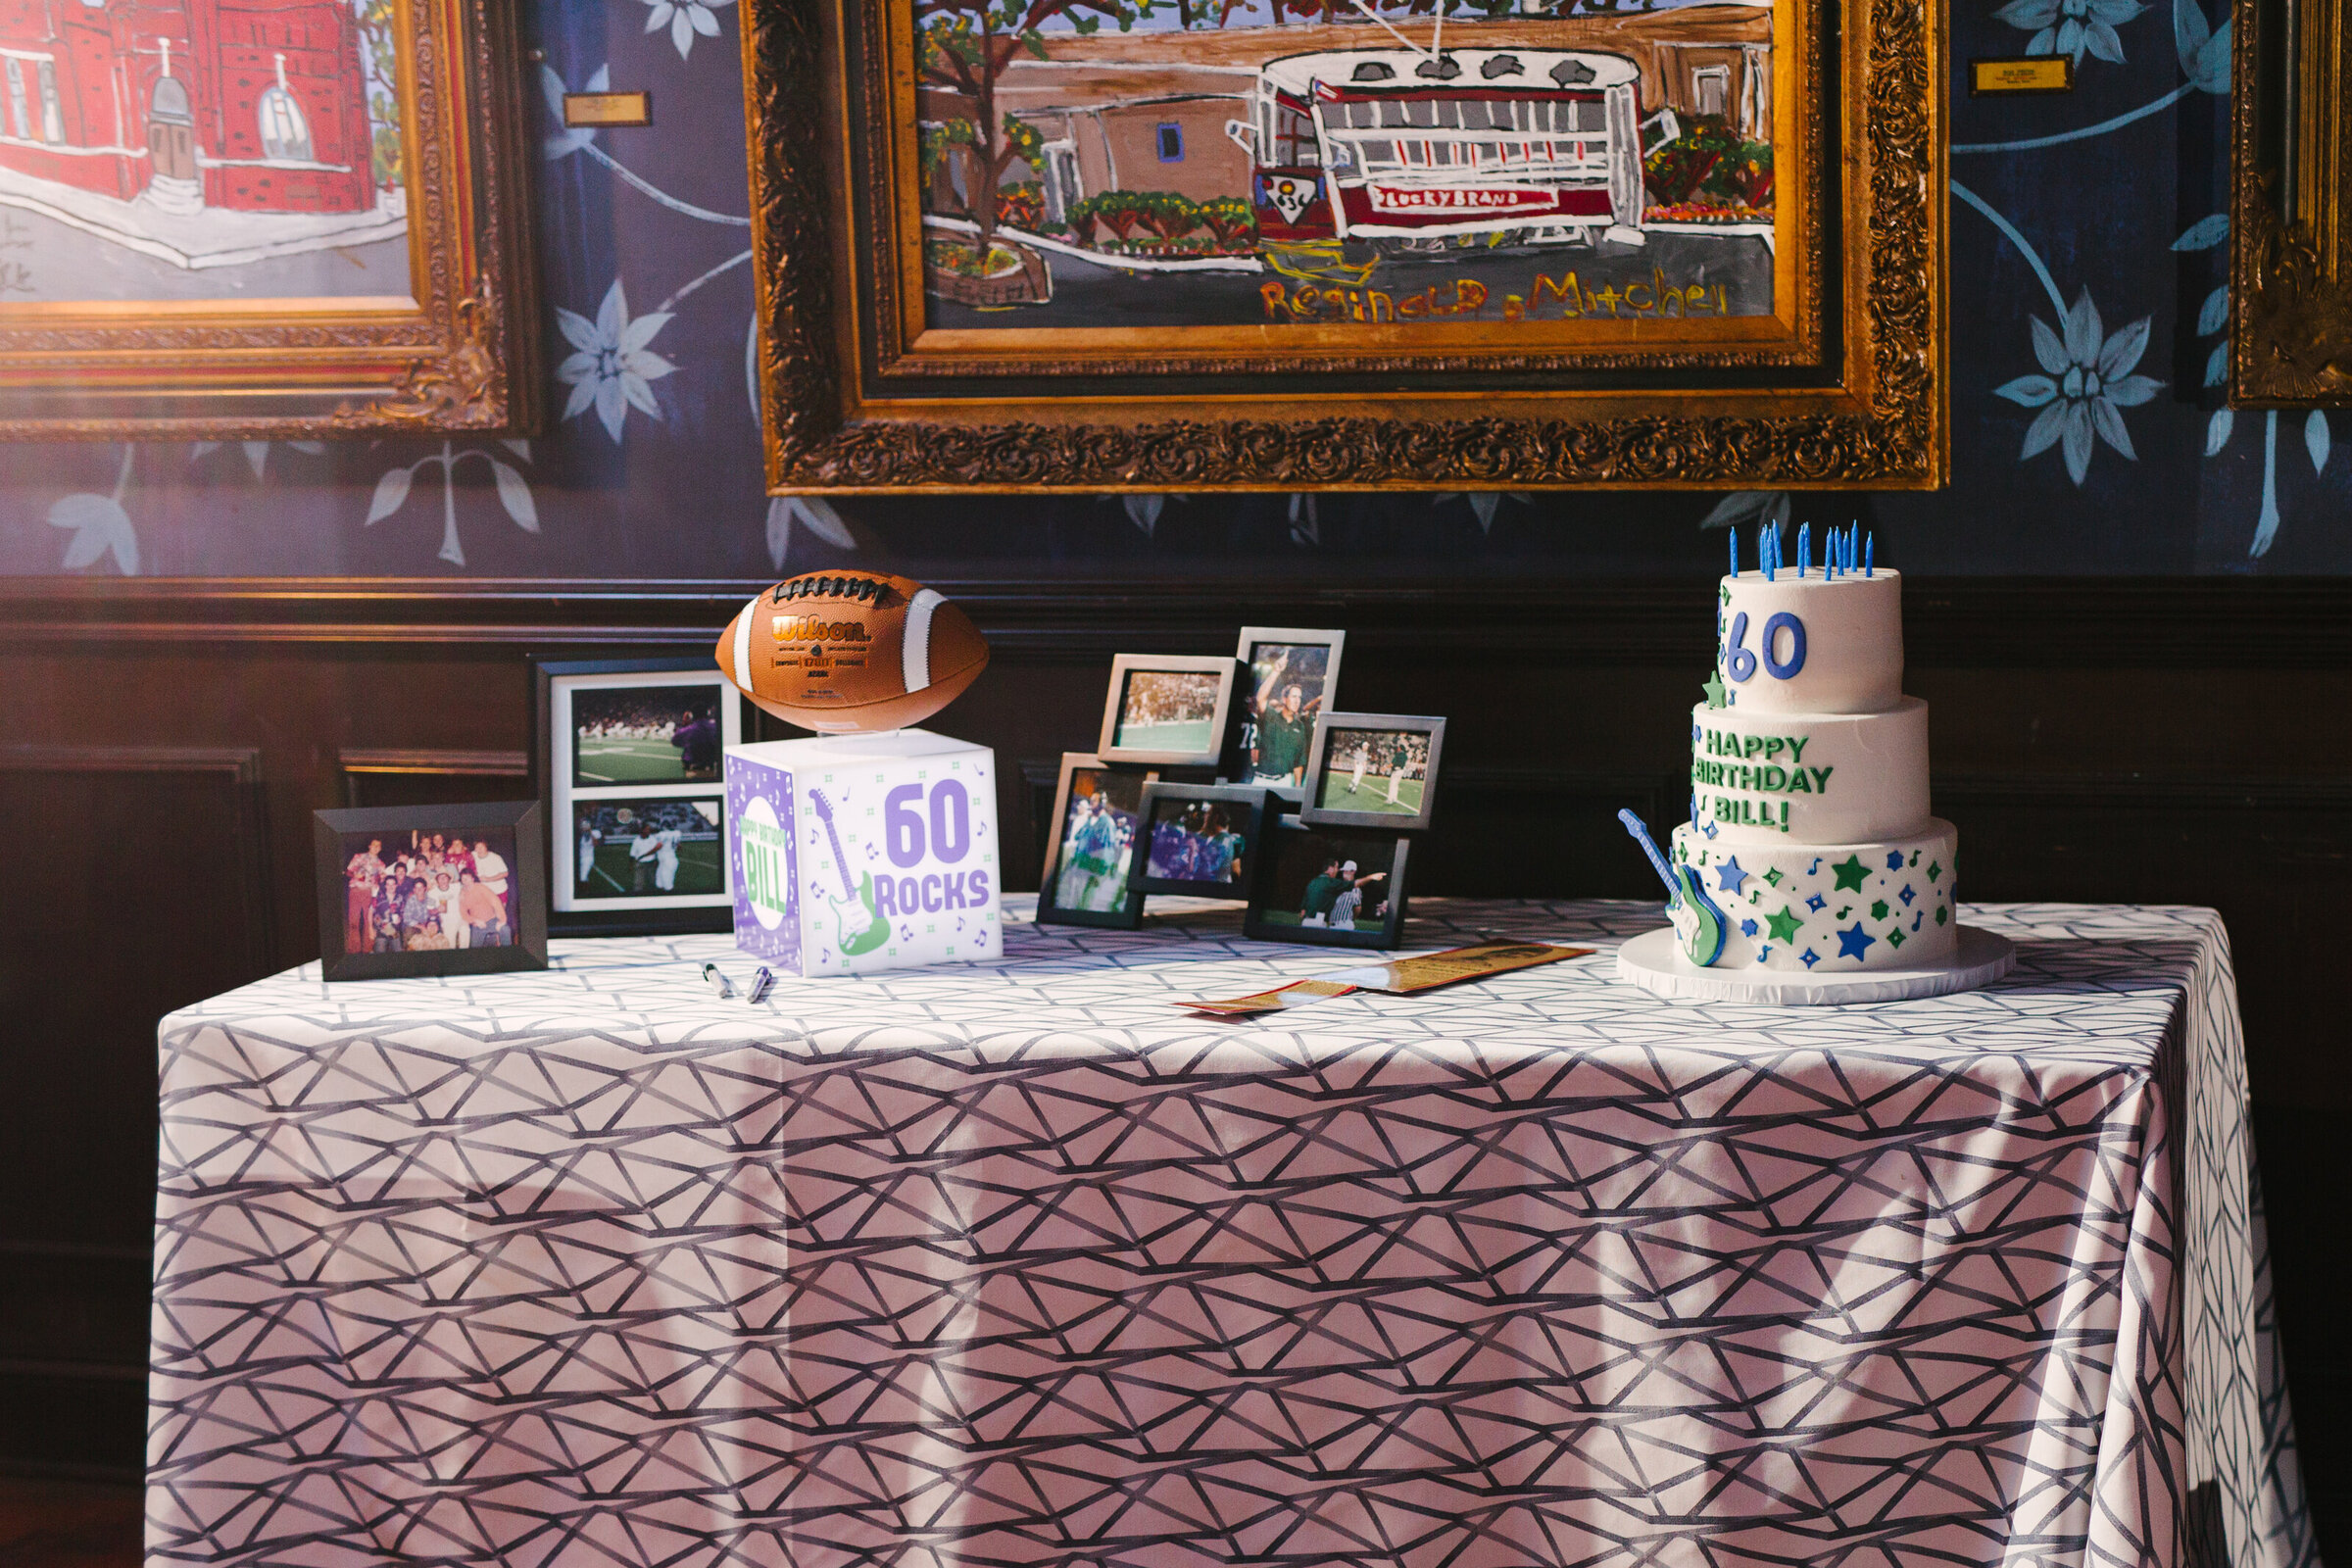 60th birthday pop parties house of blues dallas event planner 4